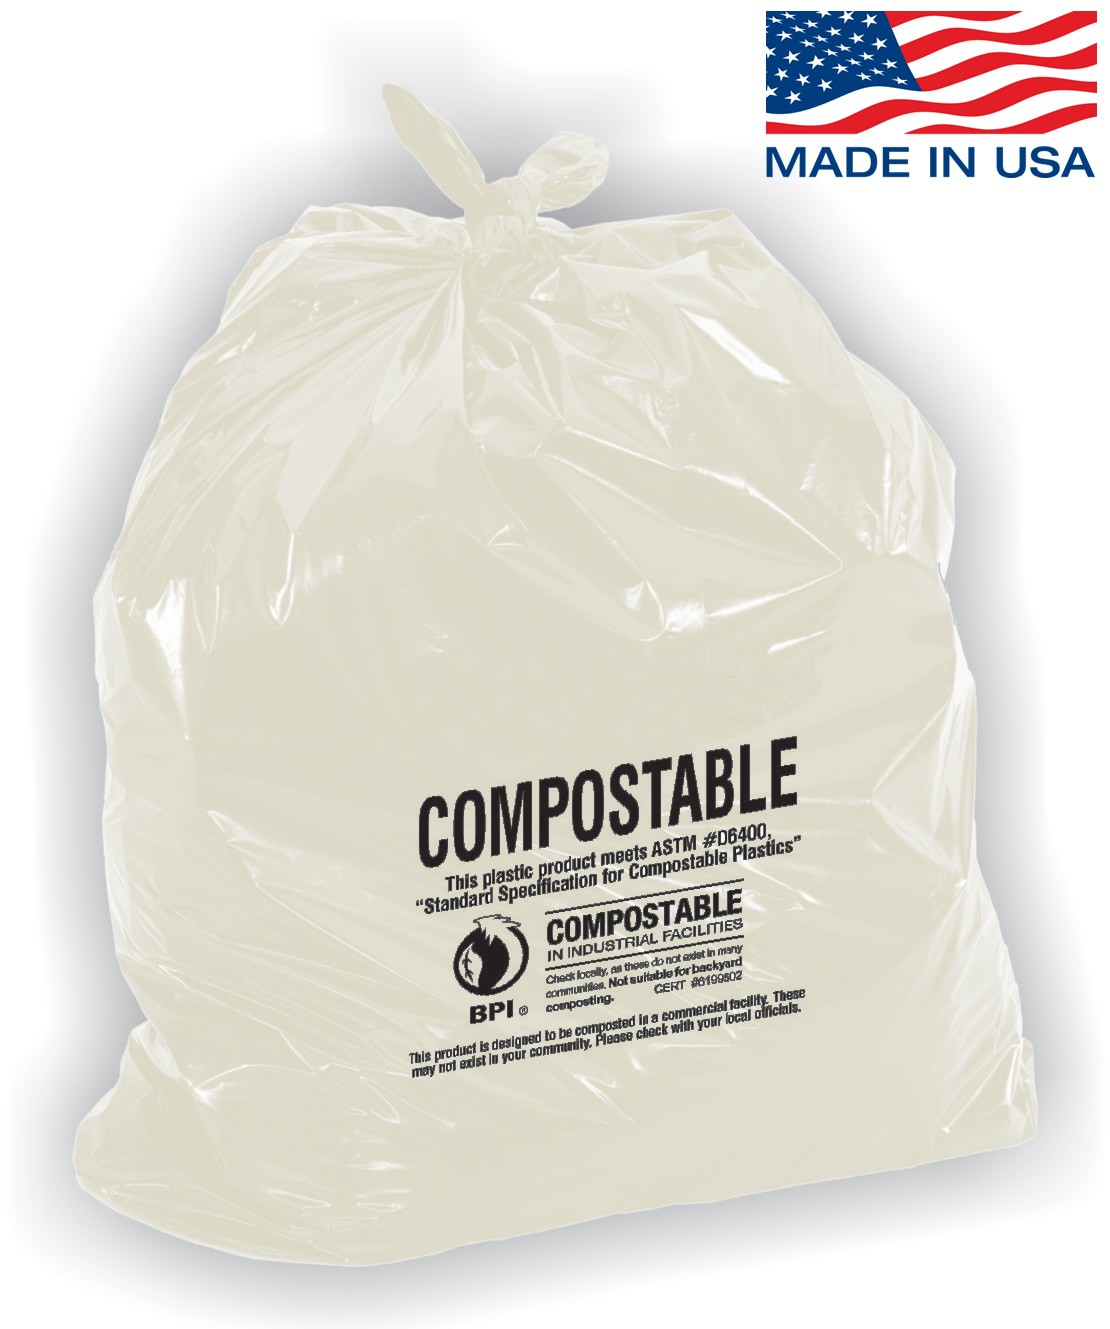 Check Out Our New Site Dedicated To Compole Biodegradable Trash Bags For The Latest Updated Information Compolebags